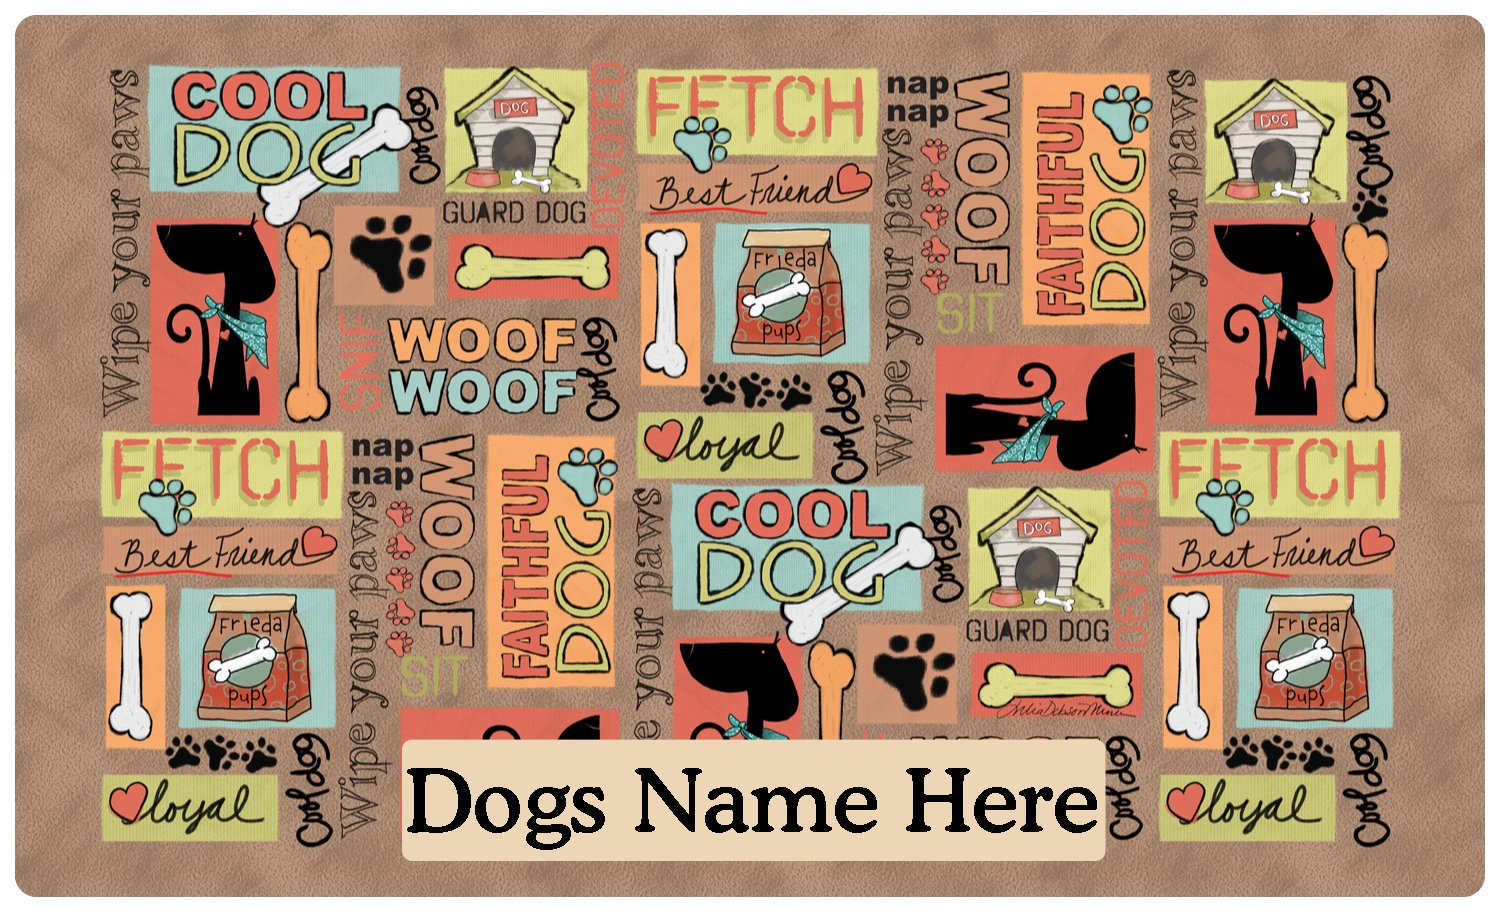 Drymate Pet Placemat, Dog Food Mat - Personalized Pet Food Mat - Personalized Placemats For Dogs (Made from Recycled Fibers, Machine Washable) - Cool Dog, Brown (Medium - 12'' x 20'')